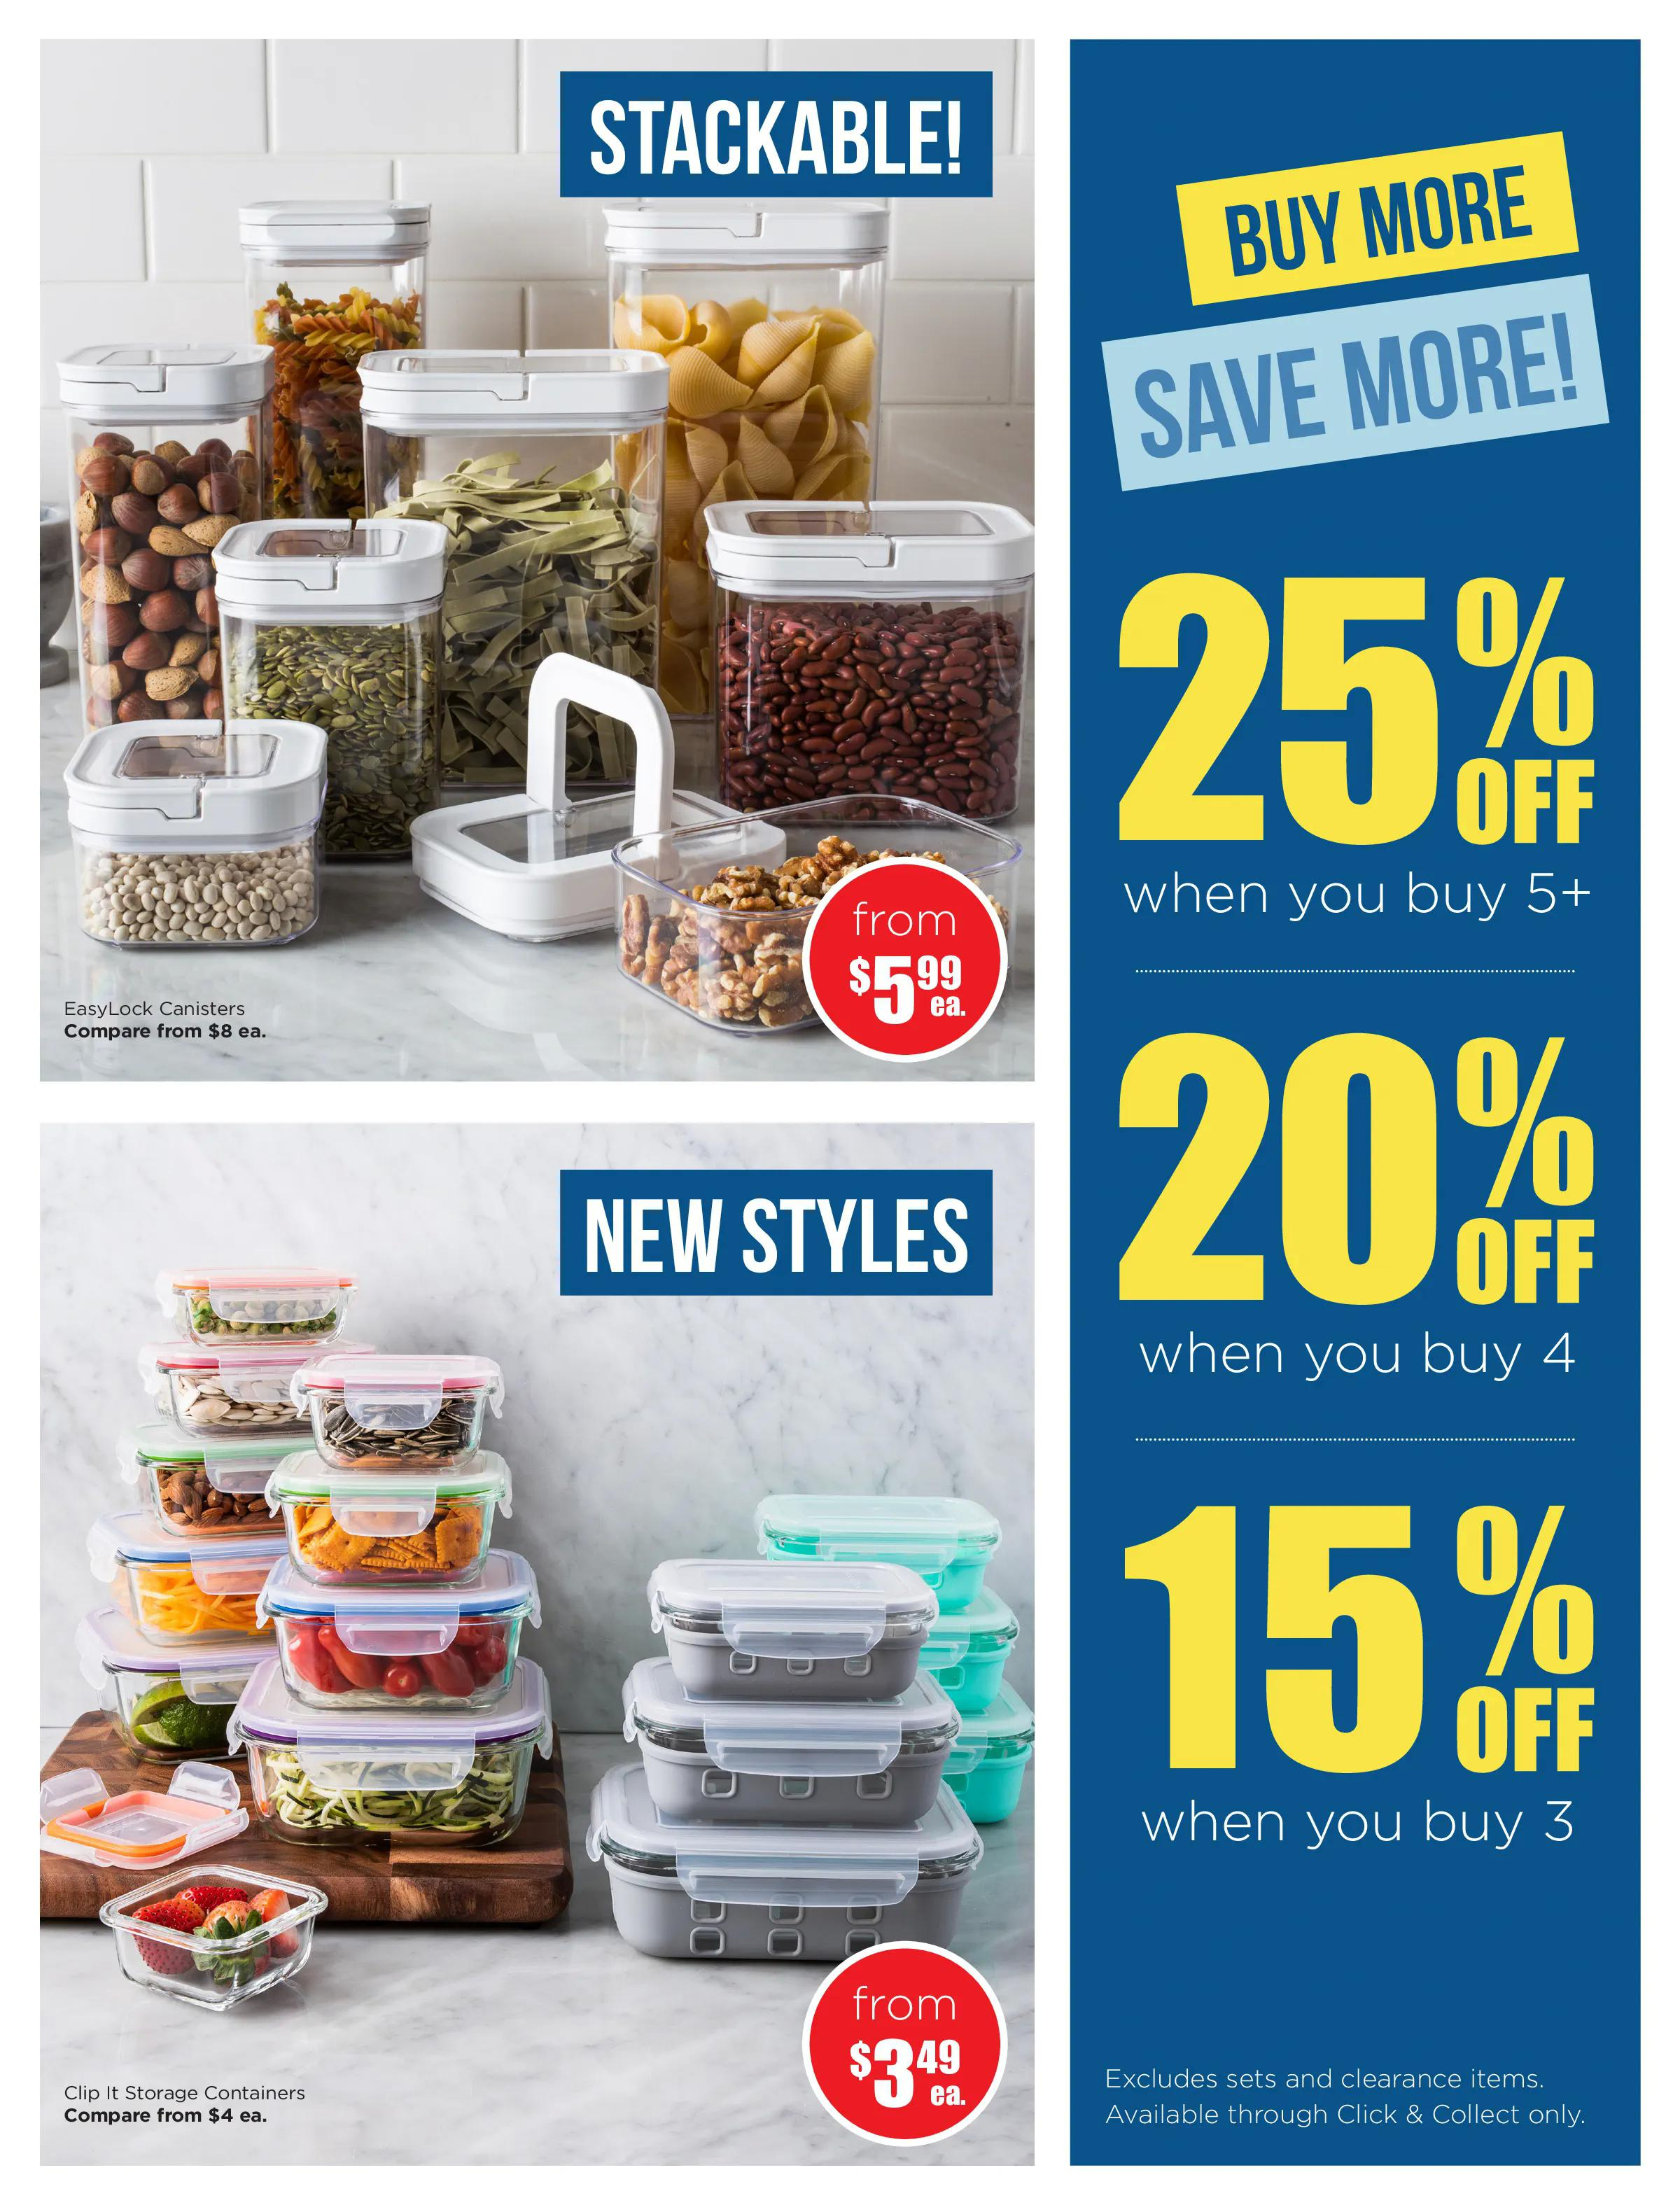 Kitchen Stuff Plus - Monthly Savings - Page 6